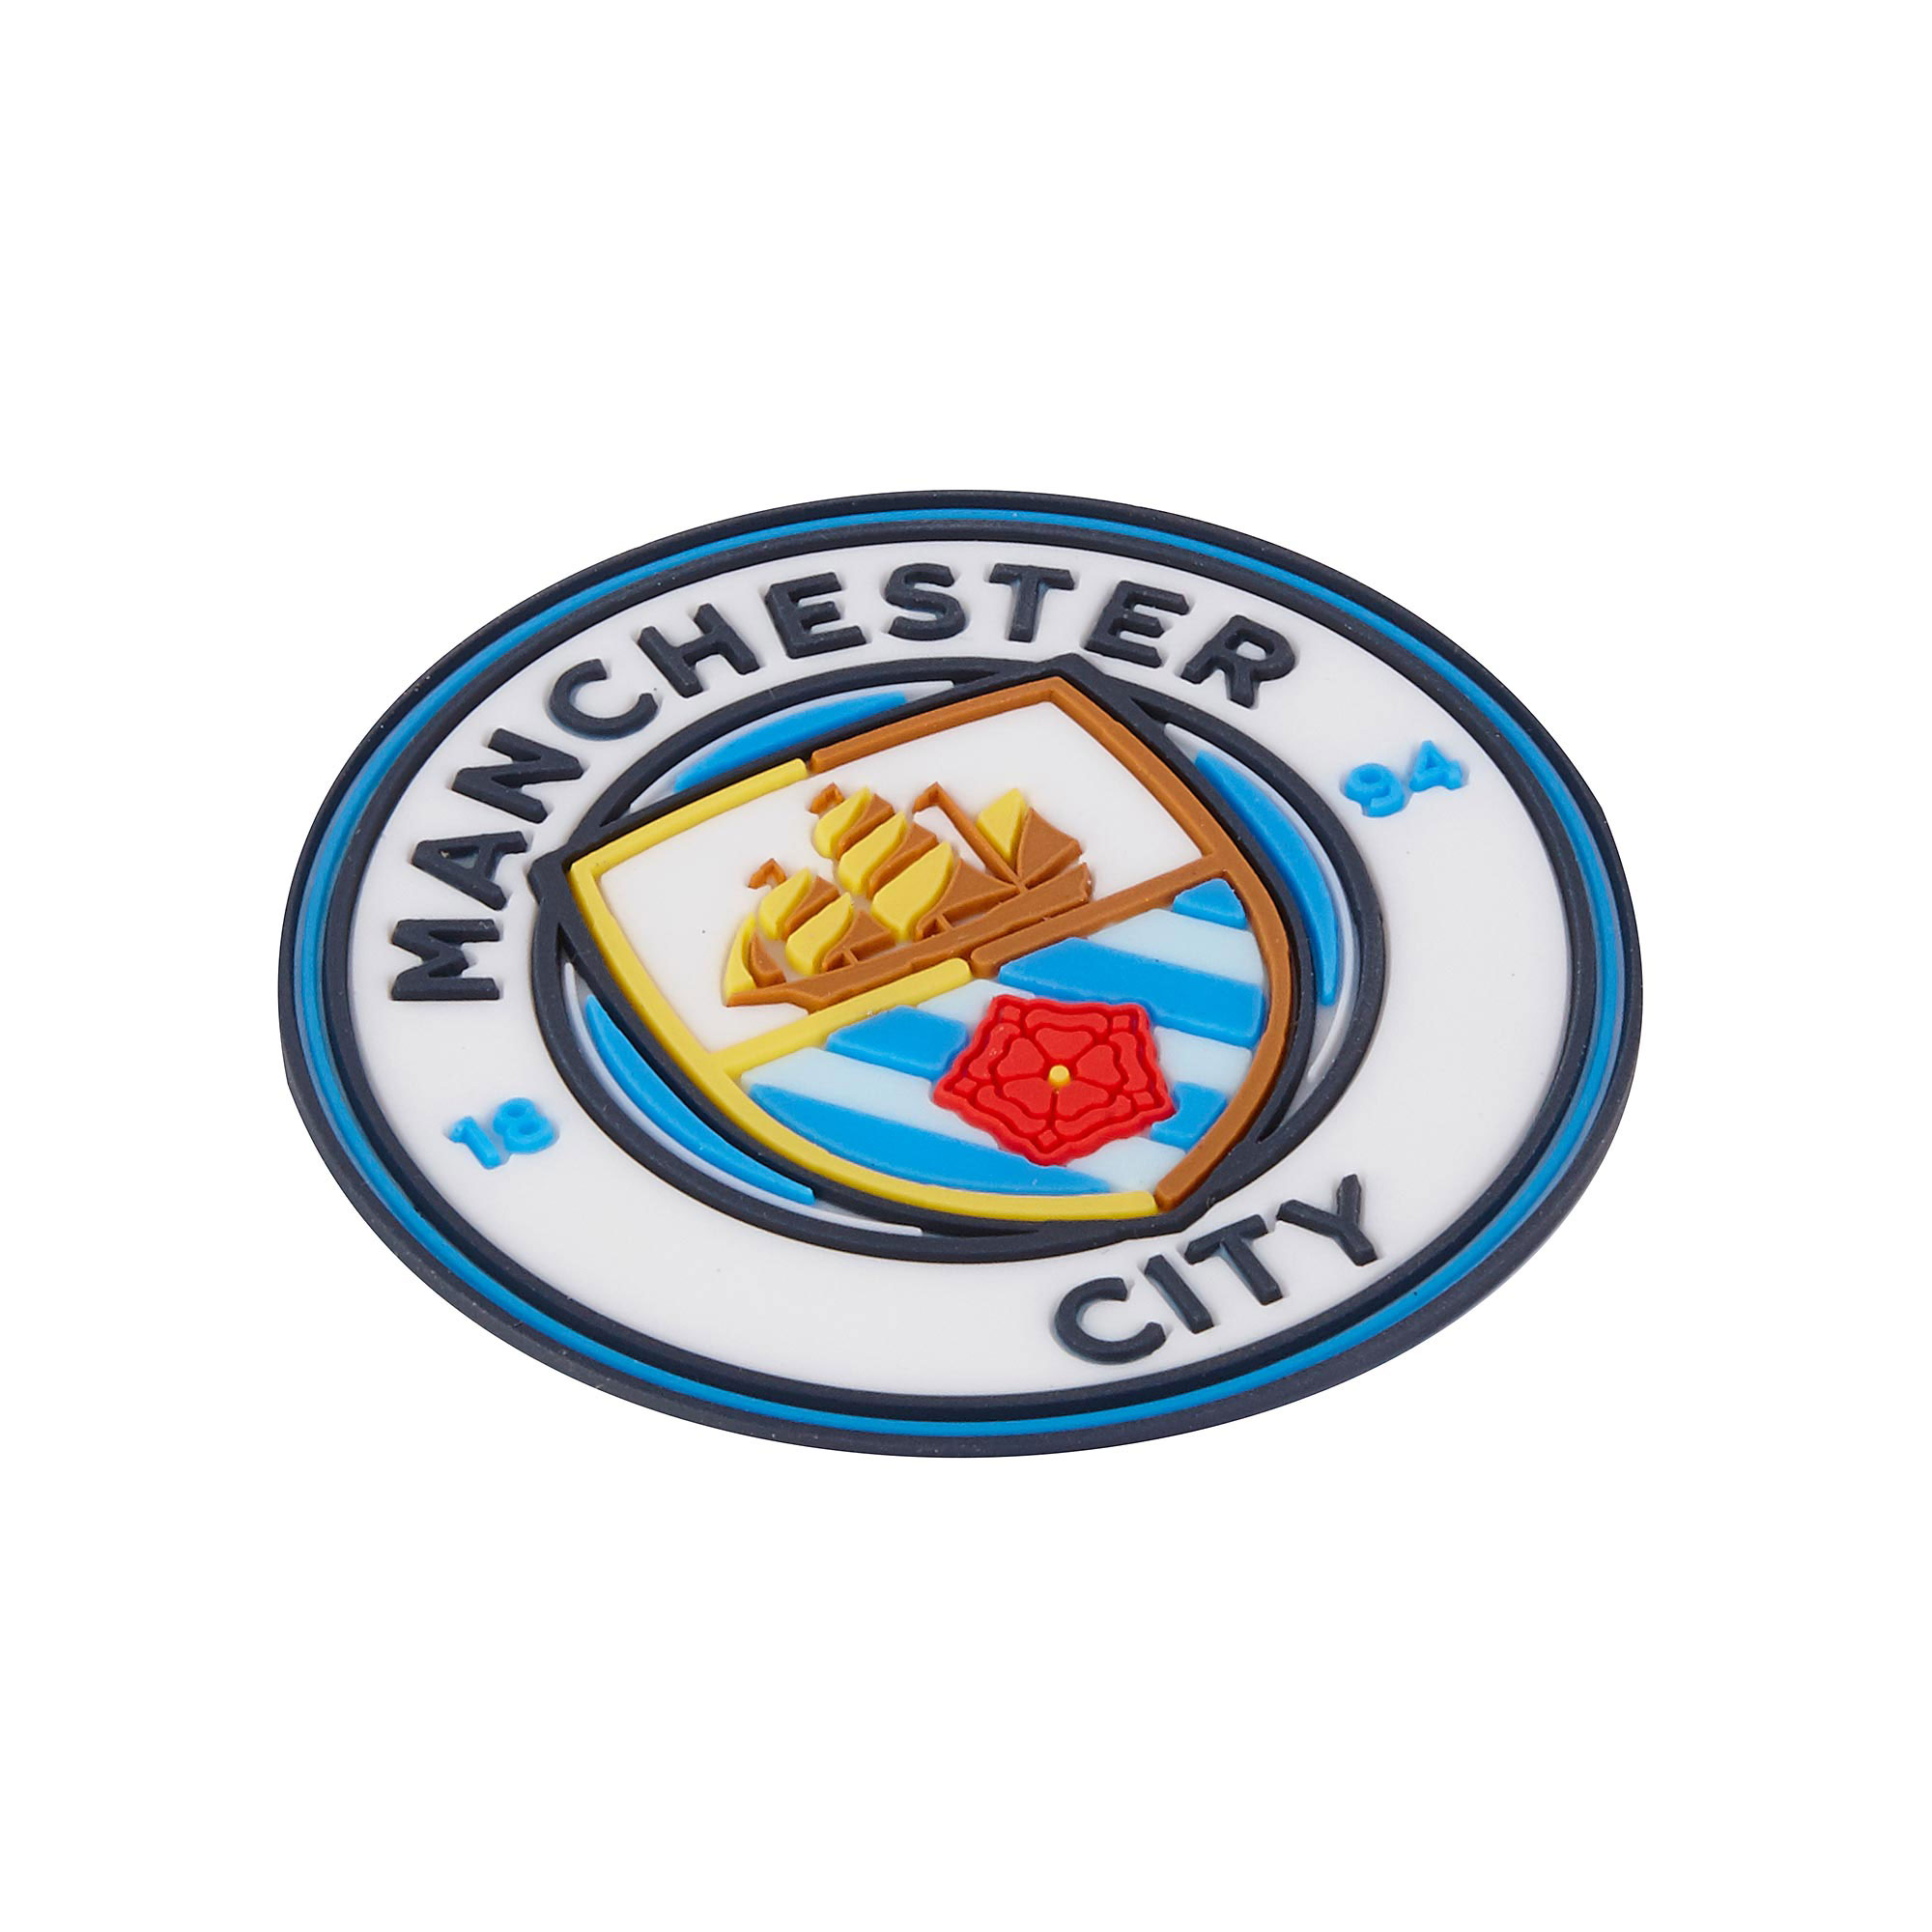 Manchester City 3D Crest Fridge Magnet